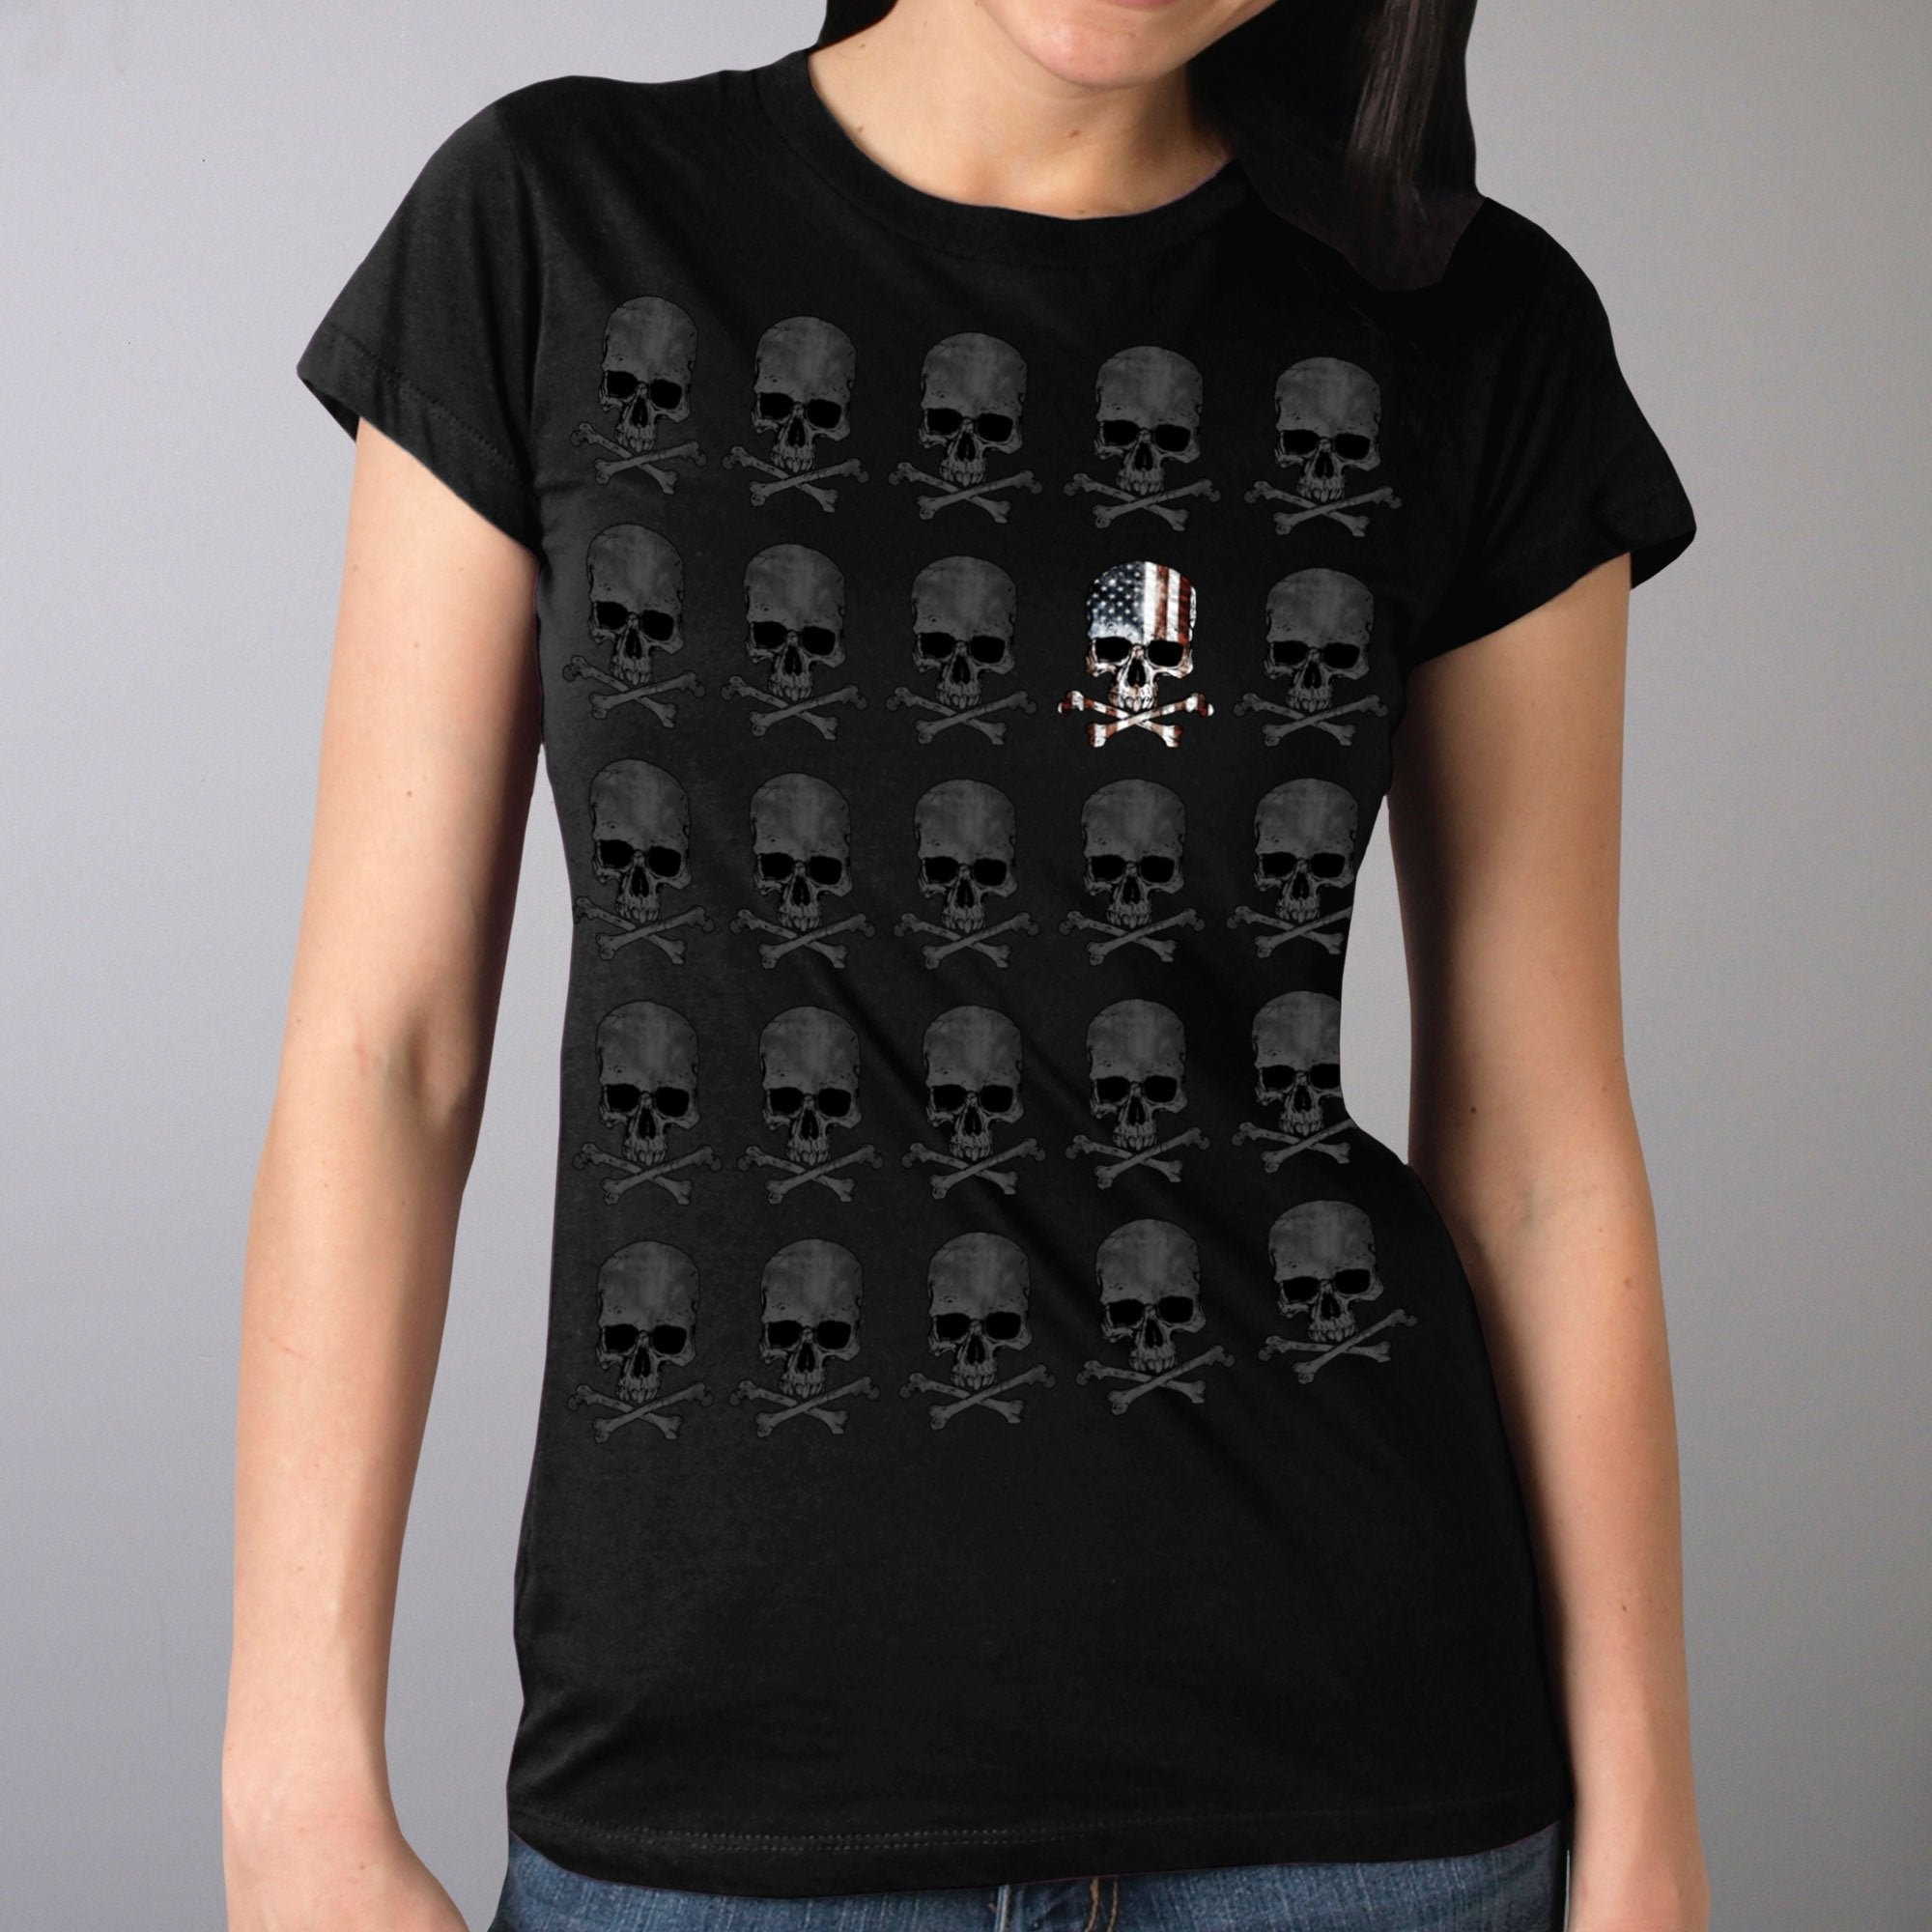 Hot Leathers GLR1513 Skull Pattern Full Cut Ladies Black T-Shirt